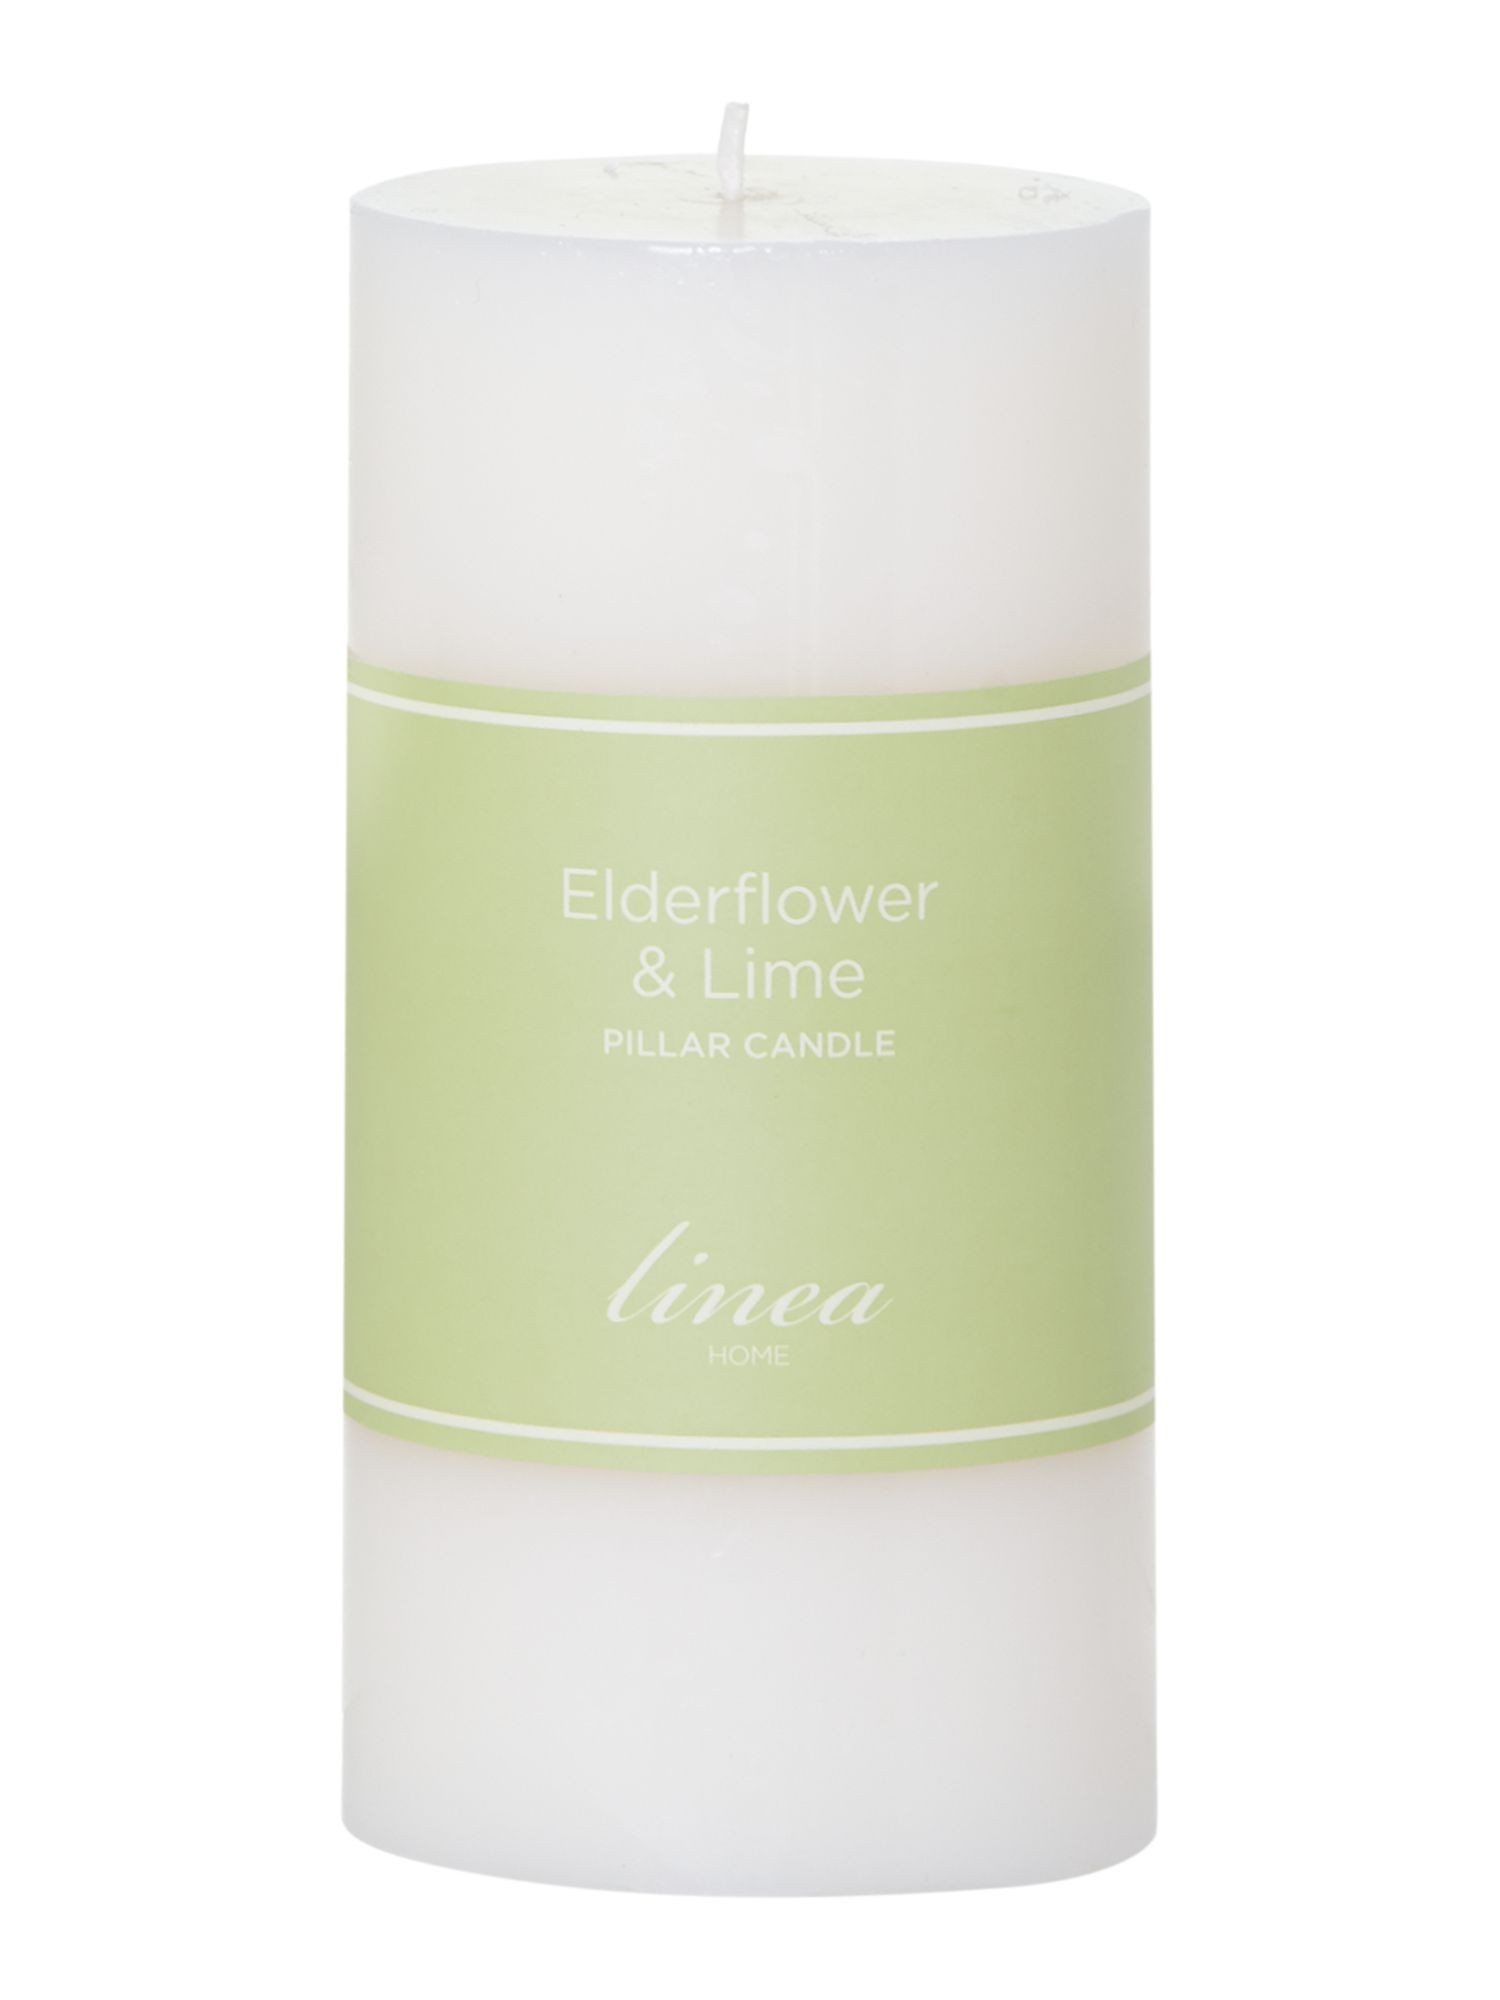 Elderflower & lime pillar candle